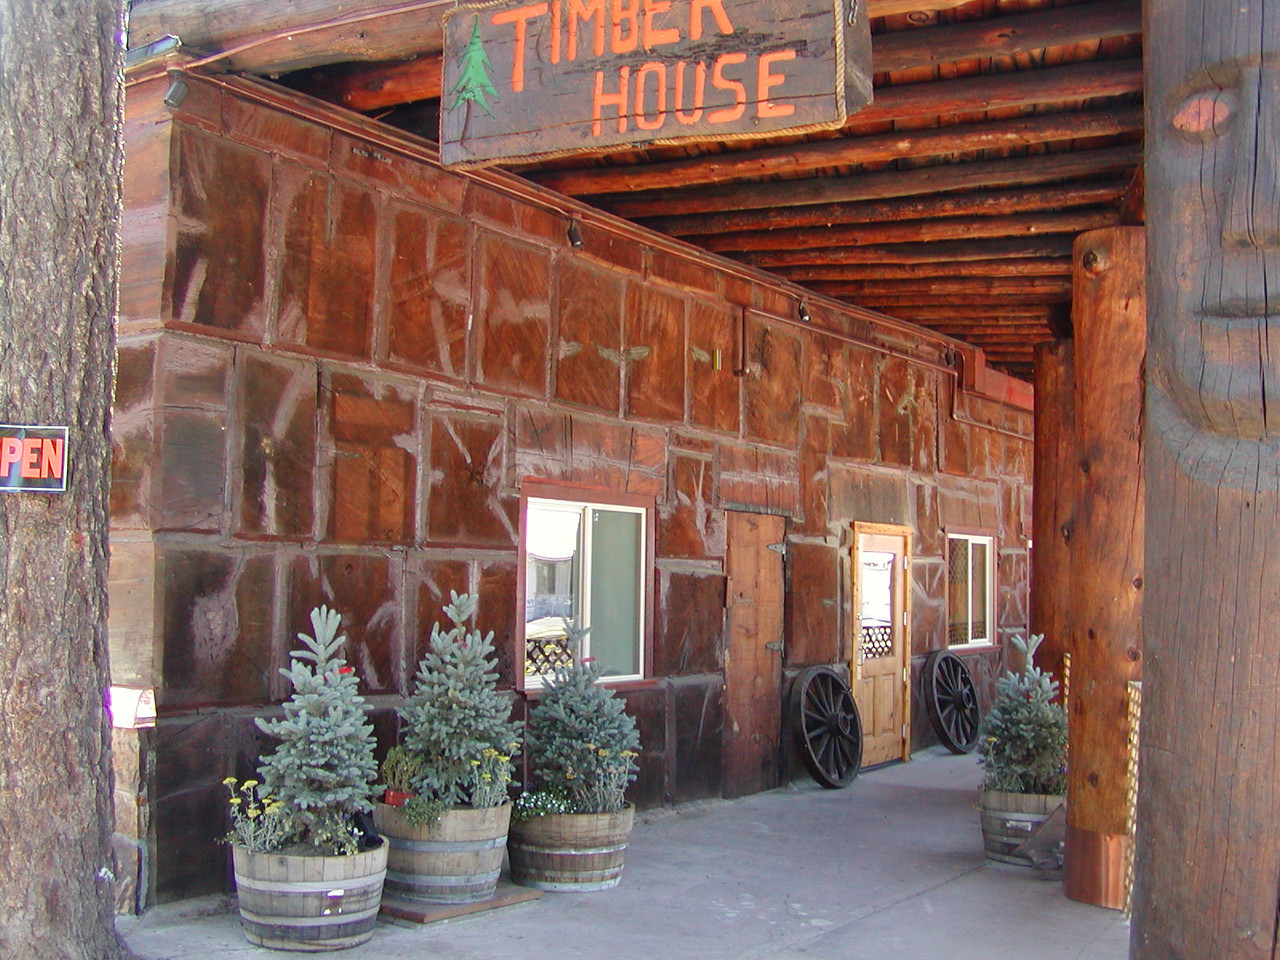 The Timber House Restaurant building in Chester was built out of chunks of old growth wood. The chunks were stacked up like masonry!